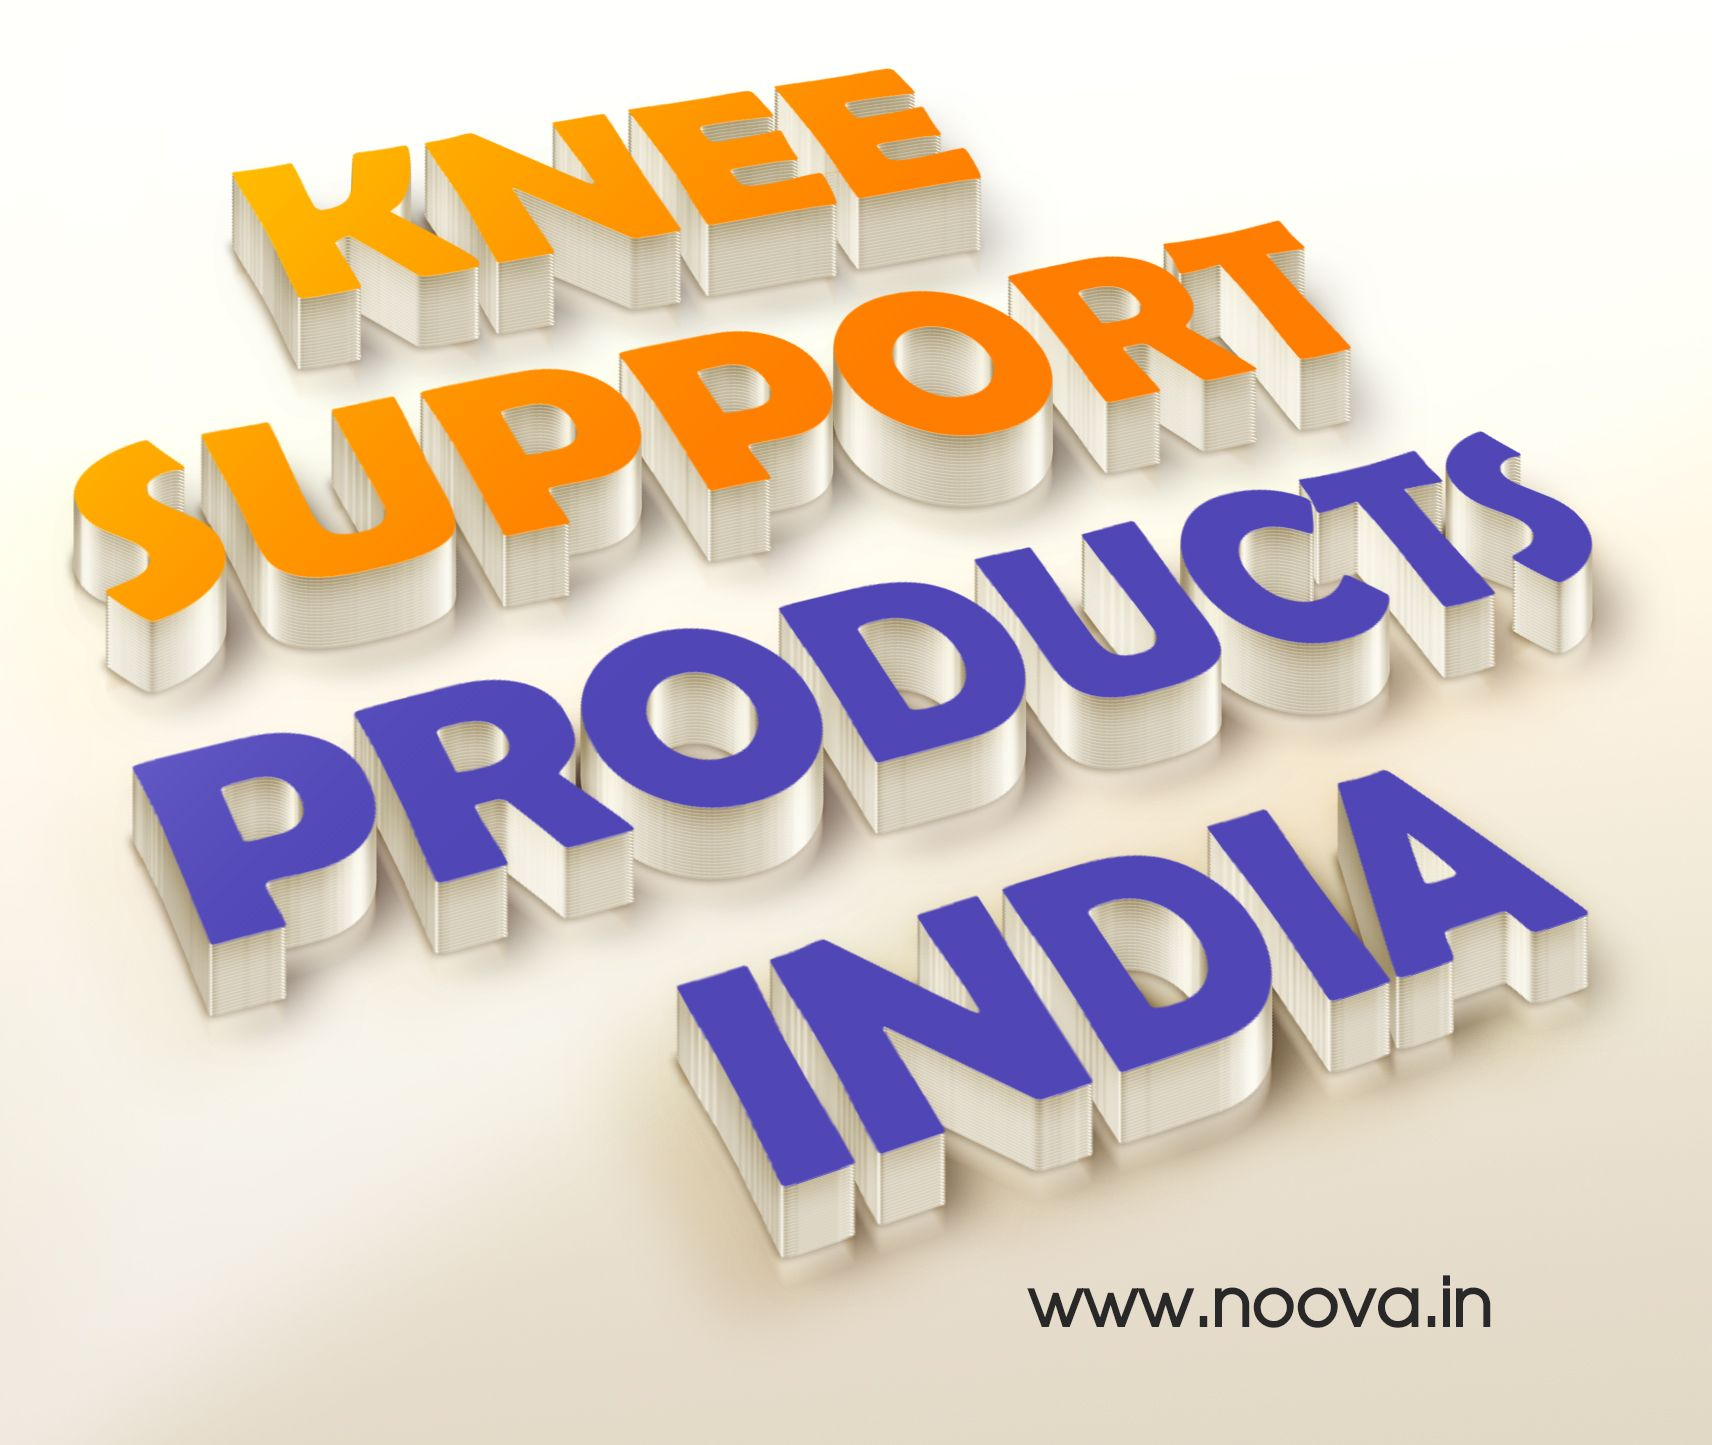 The Knee Support Products India tend to weaken the knee and leg muscles, and may ultimately lead to permanent weakness and even further deteriorate the patient's condition. Browse this site https://noova.in/products/noova-knee-support-wrap-pad-black-1-piece for more information on Knee Support Products India.